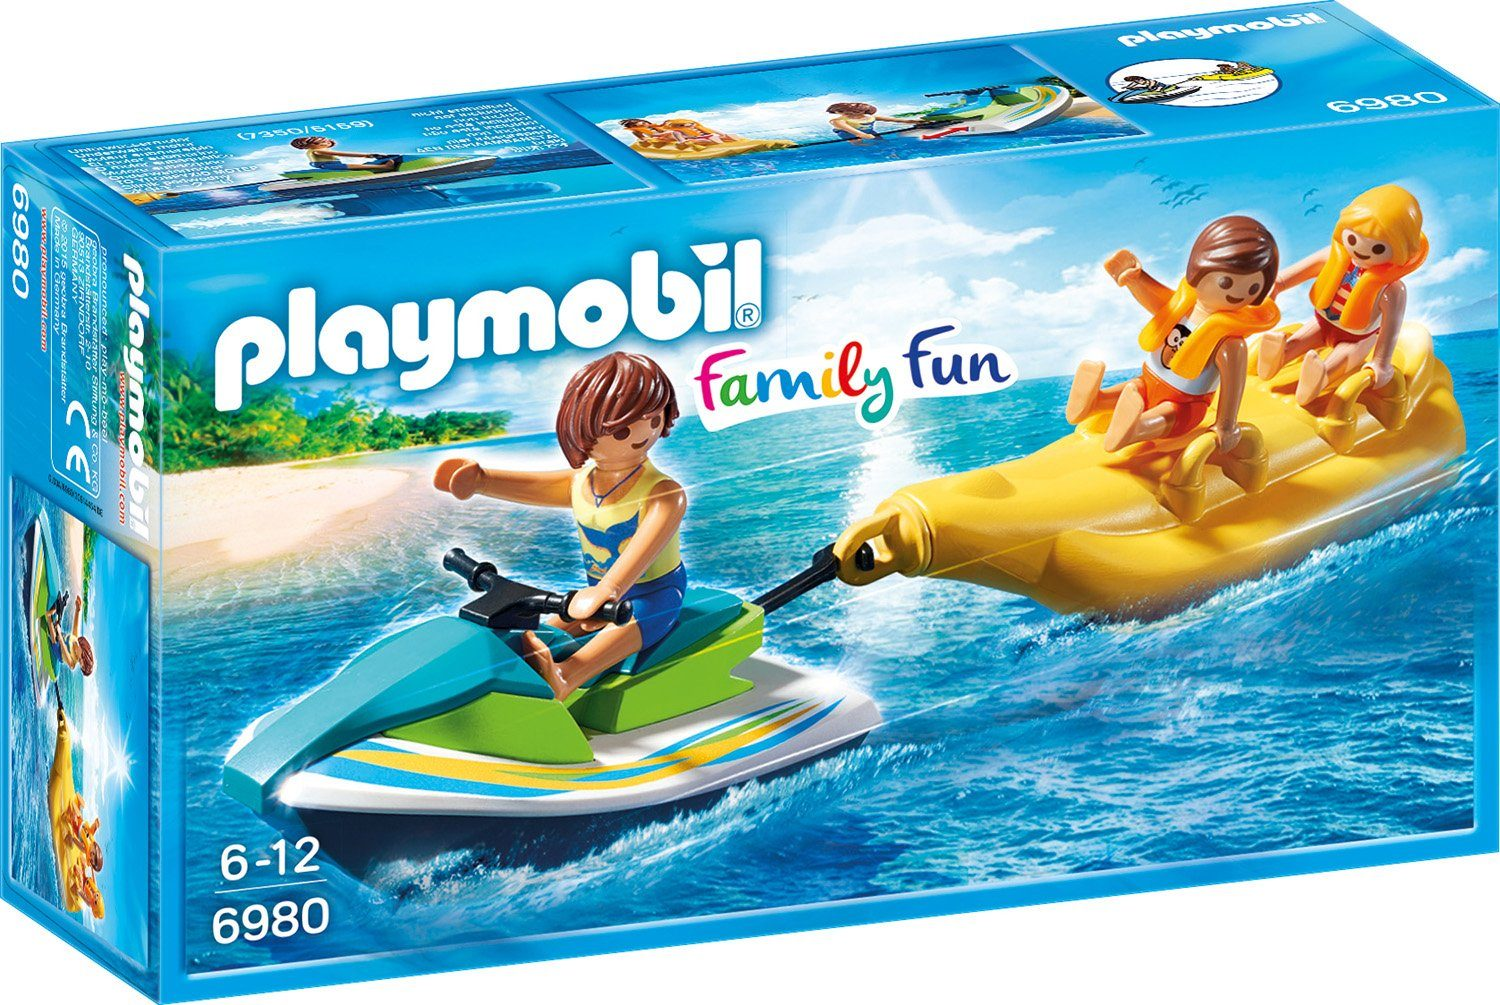 Playmobil® Aqua Scooter mit Bananenboot (6980), »Family Fun«